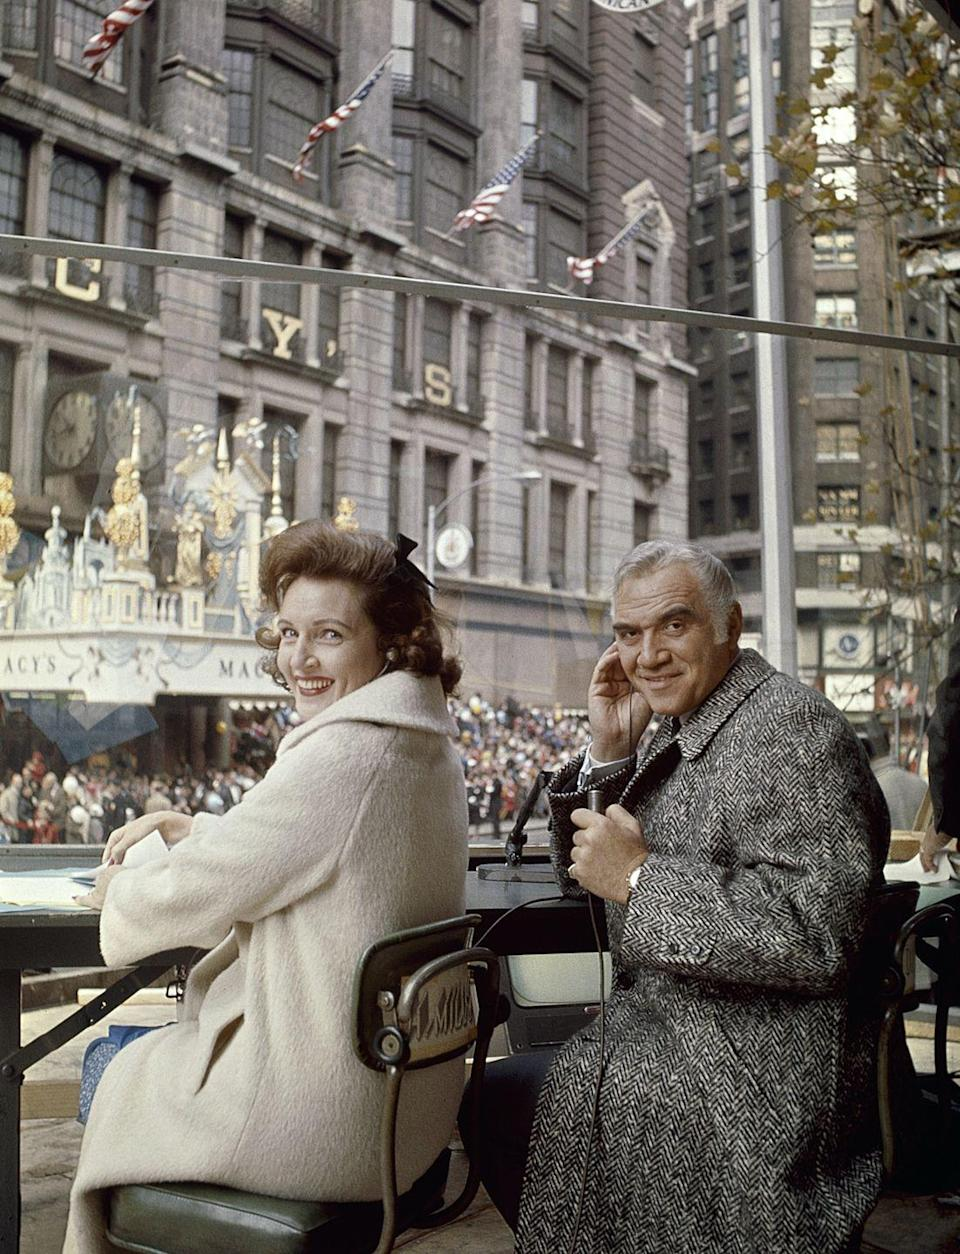 <p>Television personalities Betty White and Lorne Greene flash a smile as they sit in the hosting spot at the 1965 Macy's Thanksgiving Day Parade. The pair made televised appearances at the parade throughout much of the 1960s.</p>